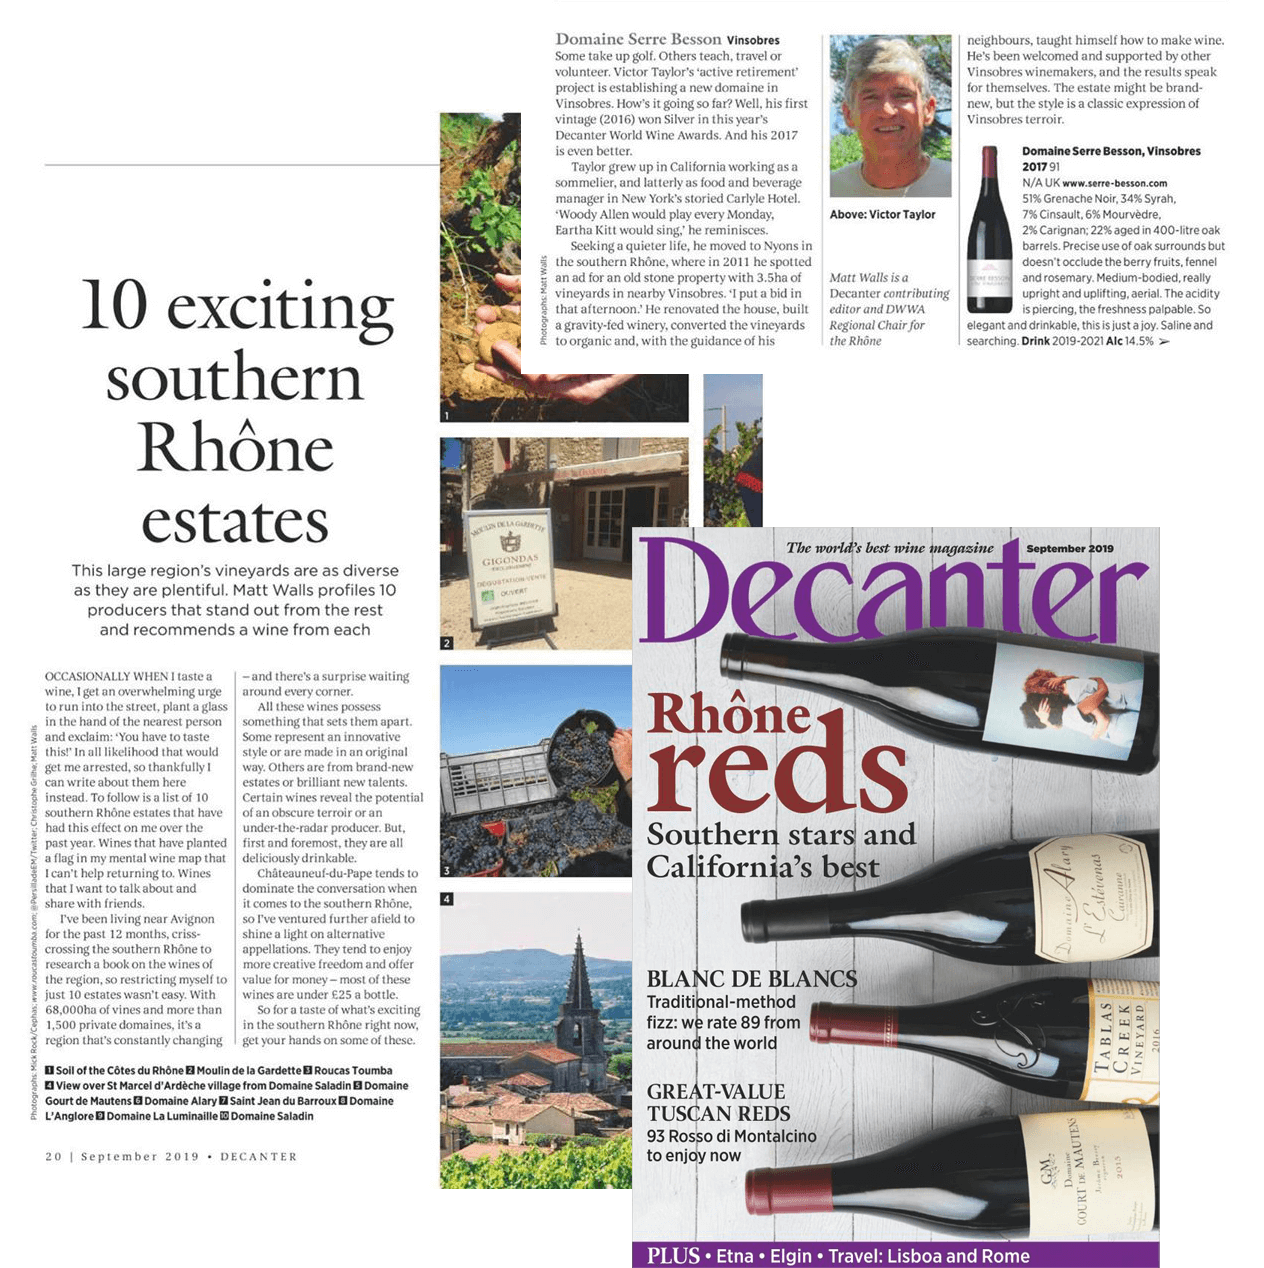 Decanter september 2019 - Best wine magazine - 10 exciting southern Rhône estates - Serre Besson Vinsobre 2017